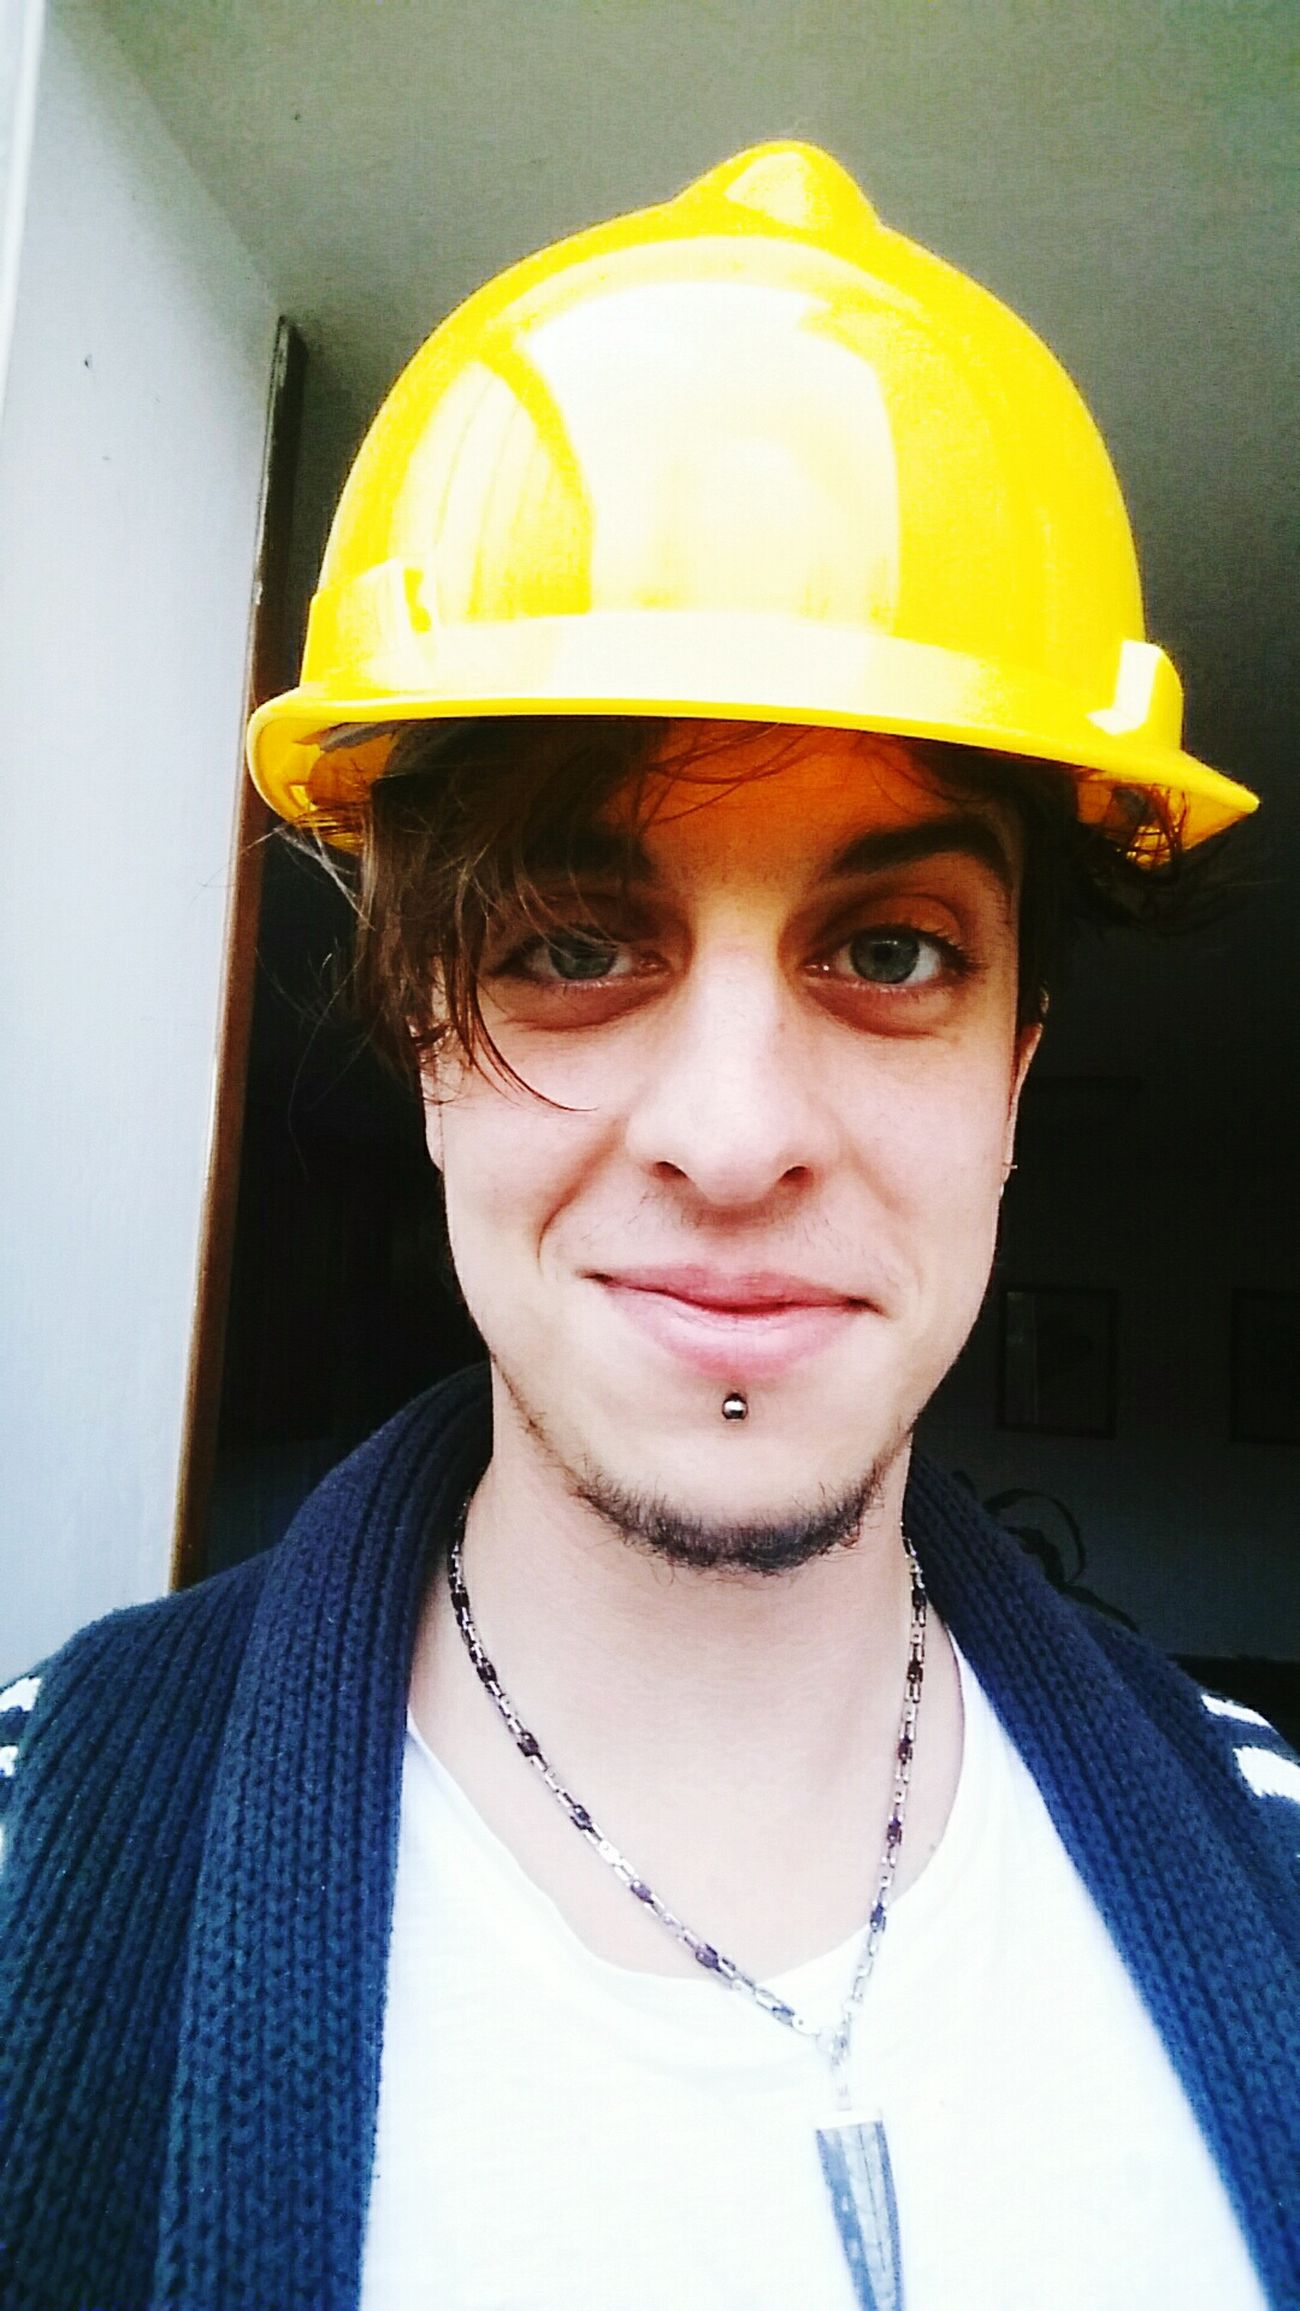 """Menny at Work"" Ahahah XD My Home That's Me Hi! Cheese! Hello World Enjoying Life Crazy Idiot Working Hard Workhouse"